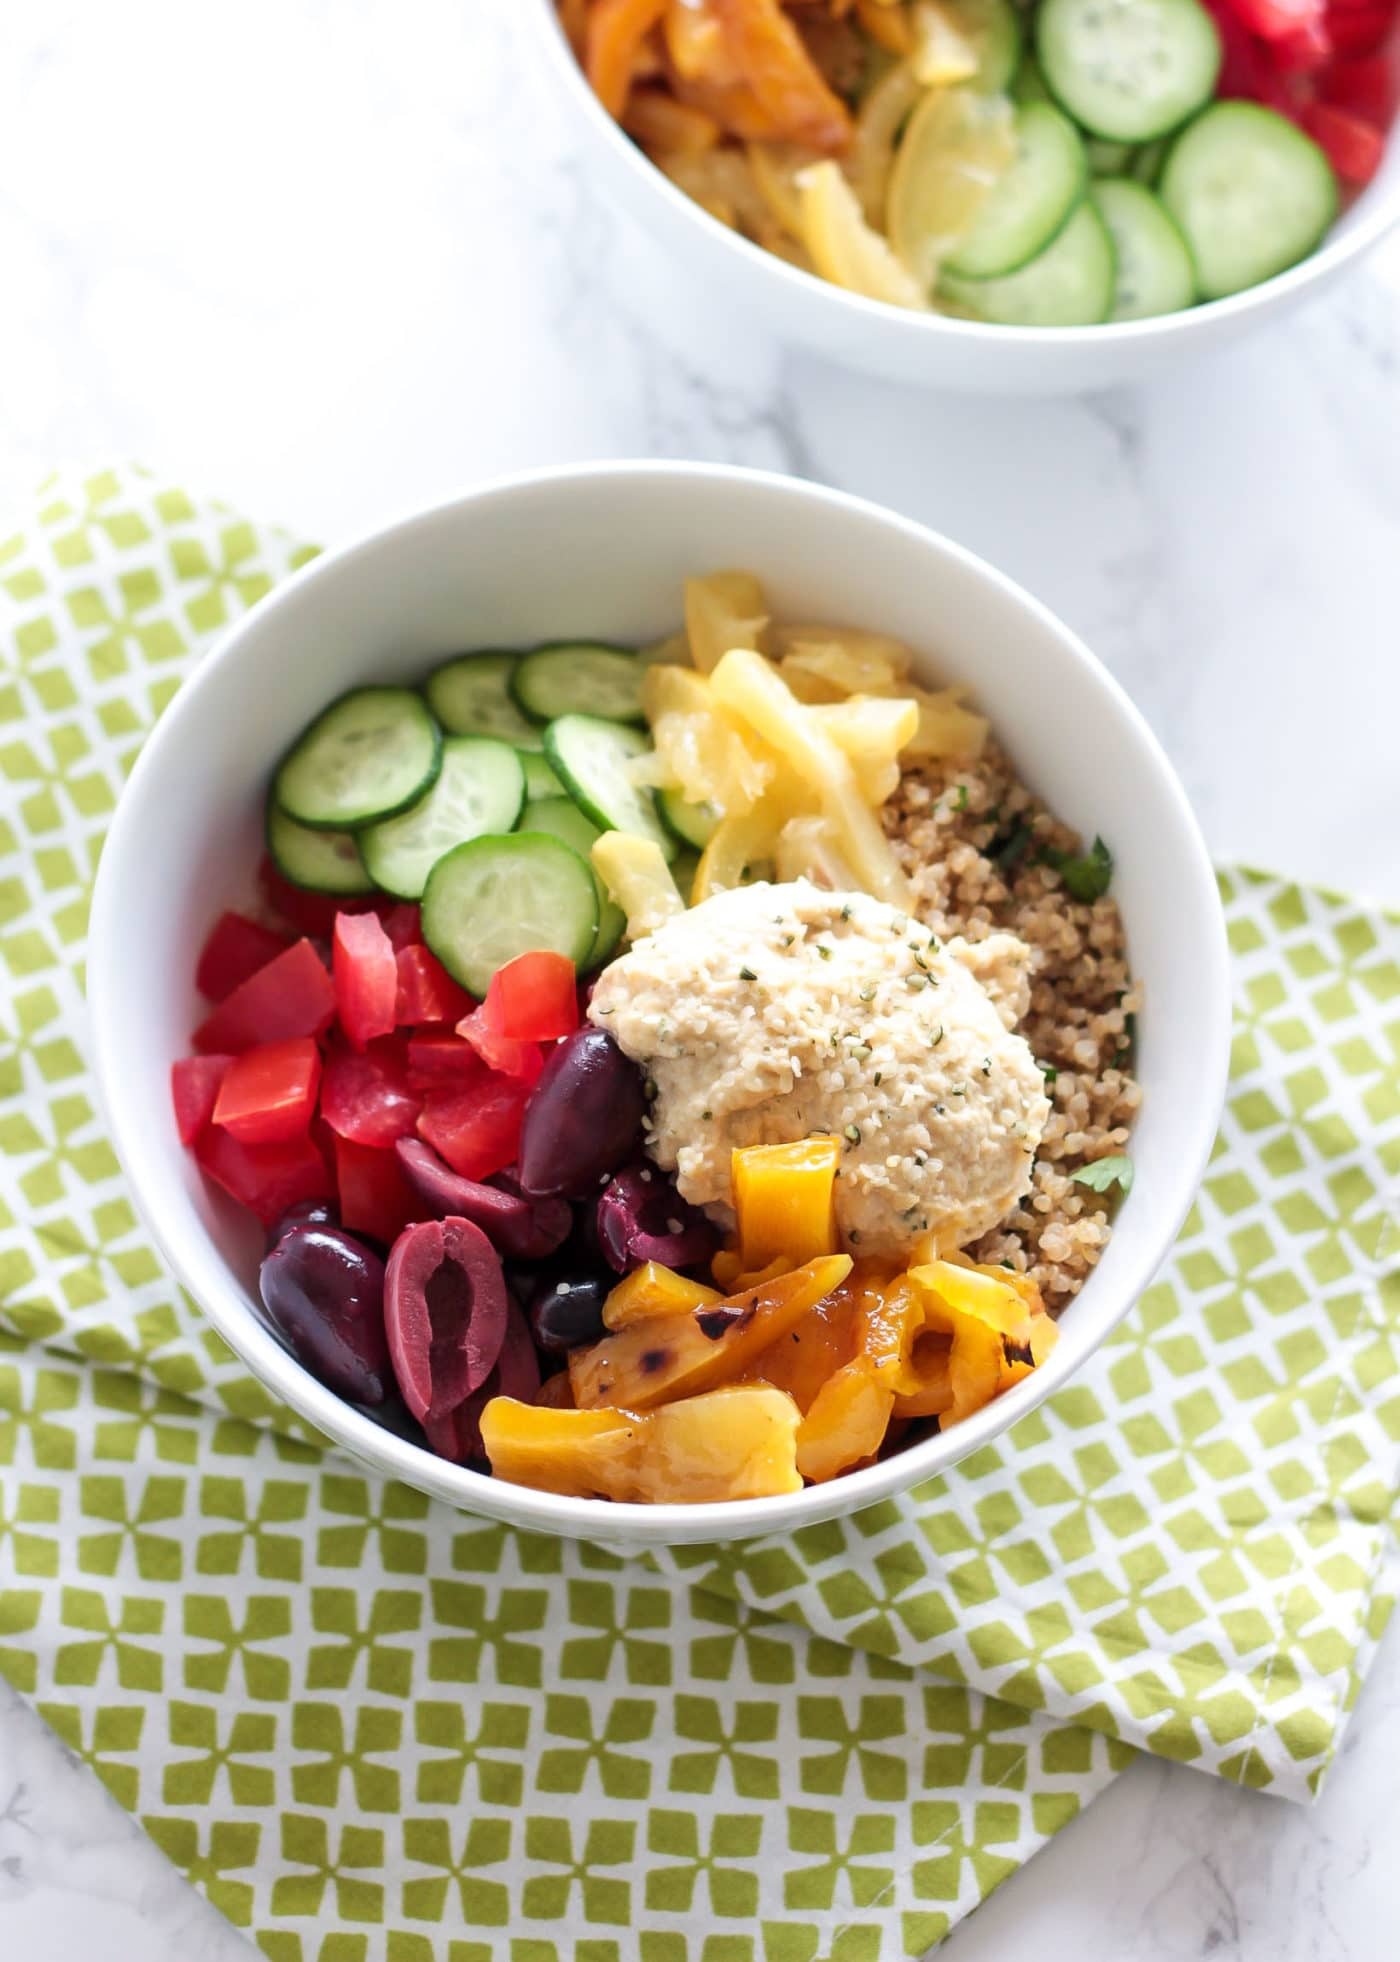 These Mediterranean Quinoa Bowls are chock-full of vegetables and ...